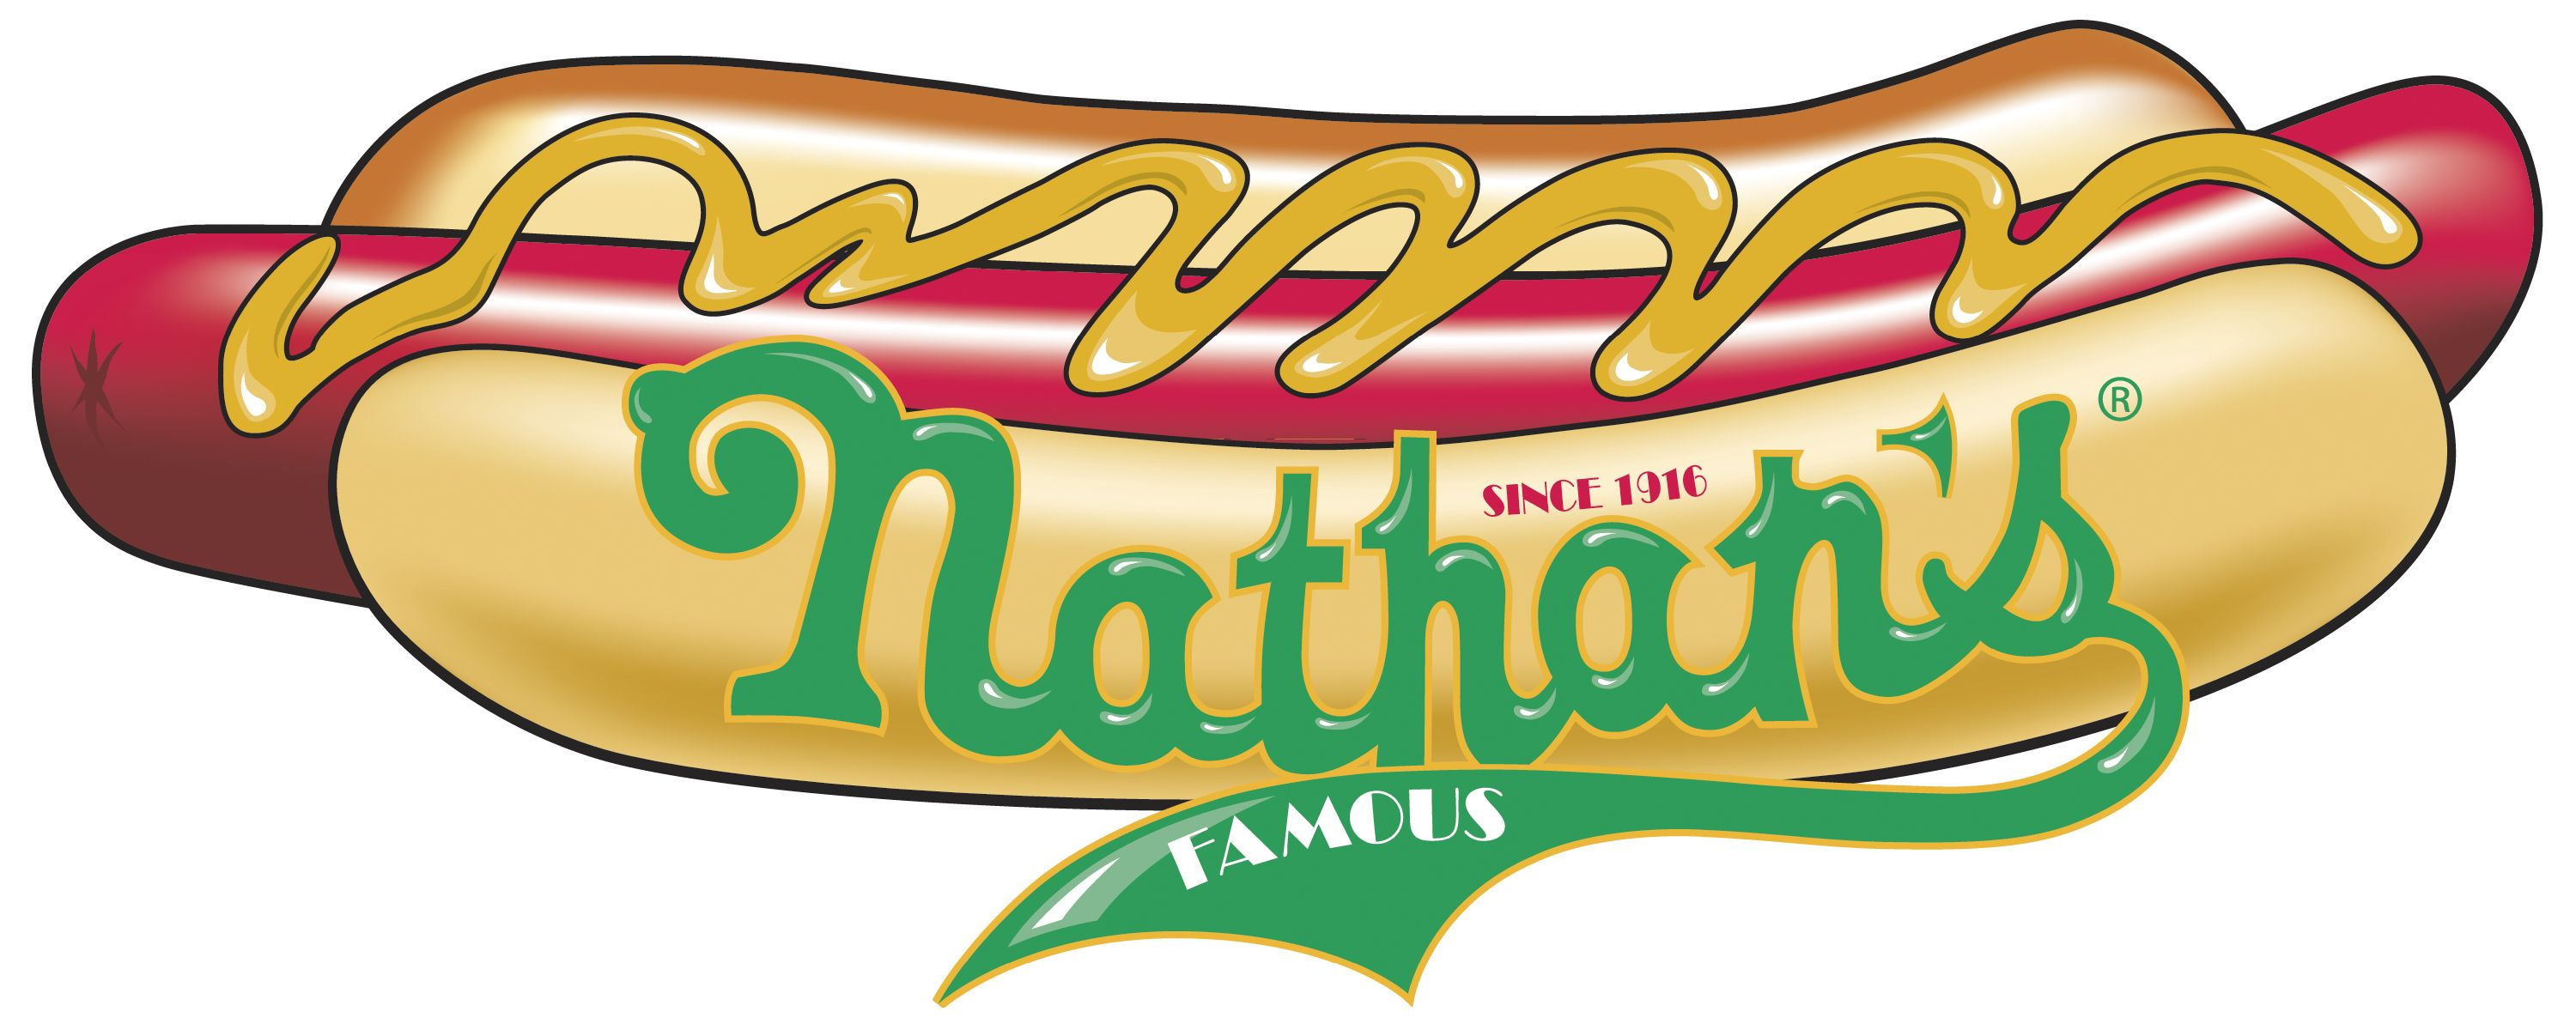 photo about Nathans Hot Dog Printable Coupons referred to as Pin upon Structure Emblems